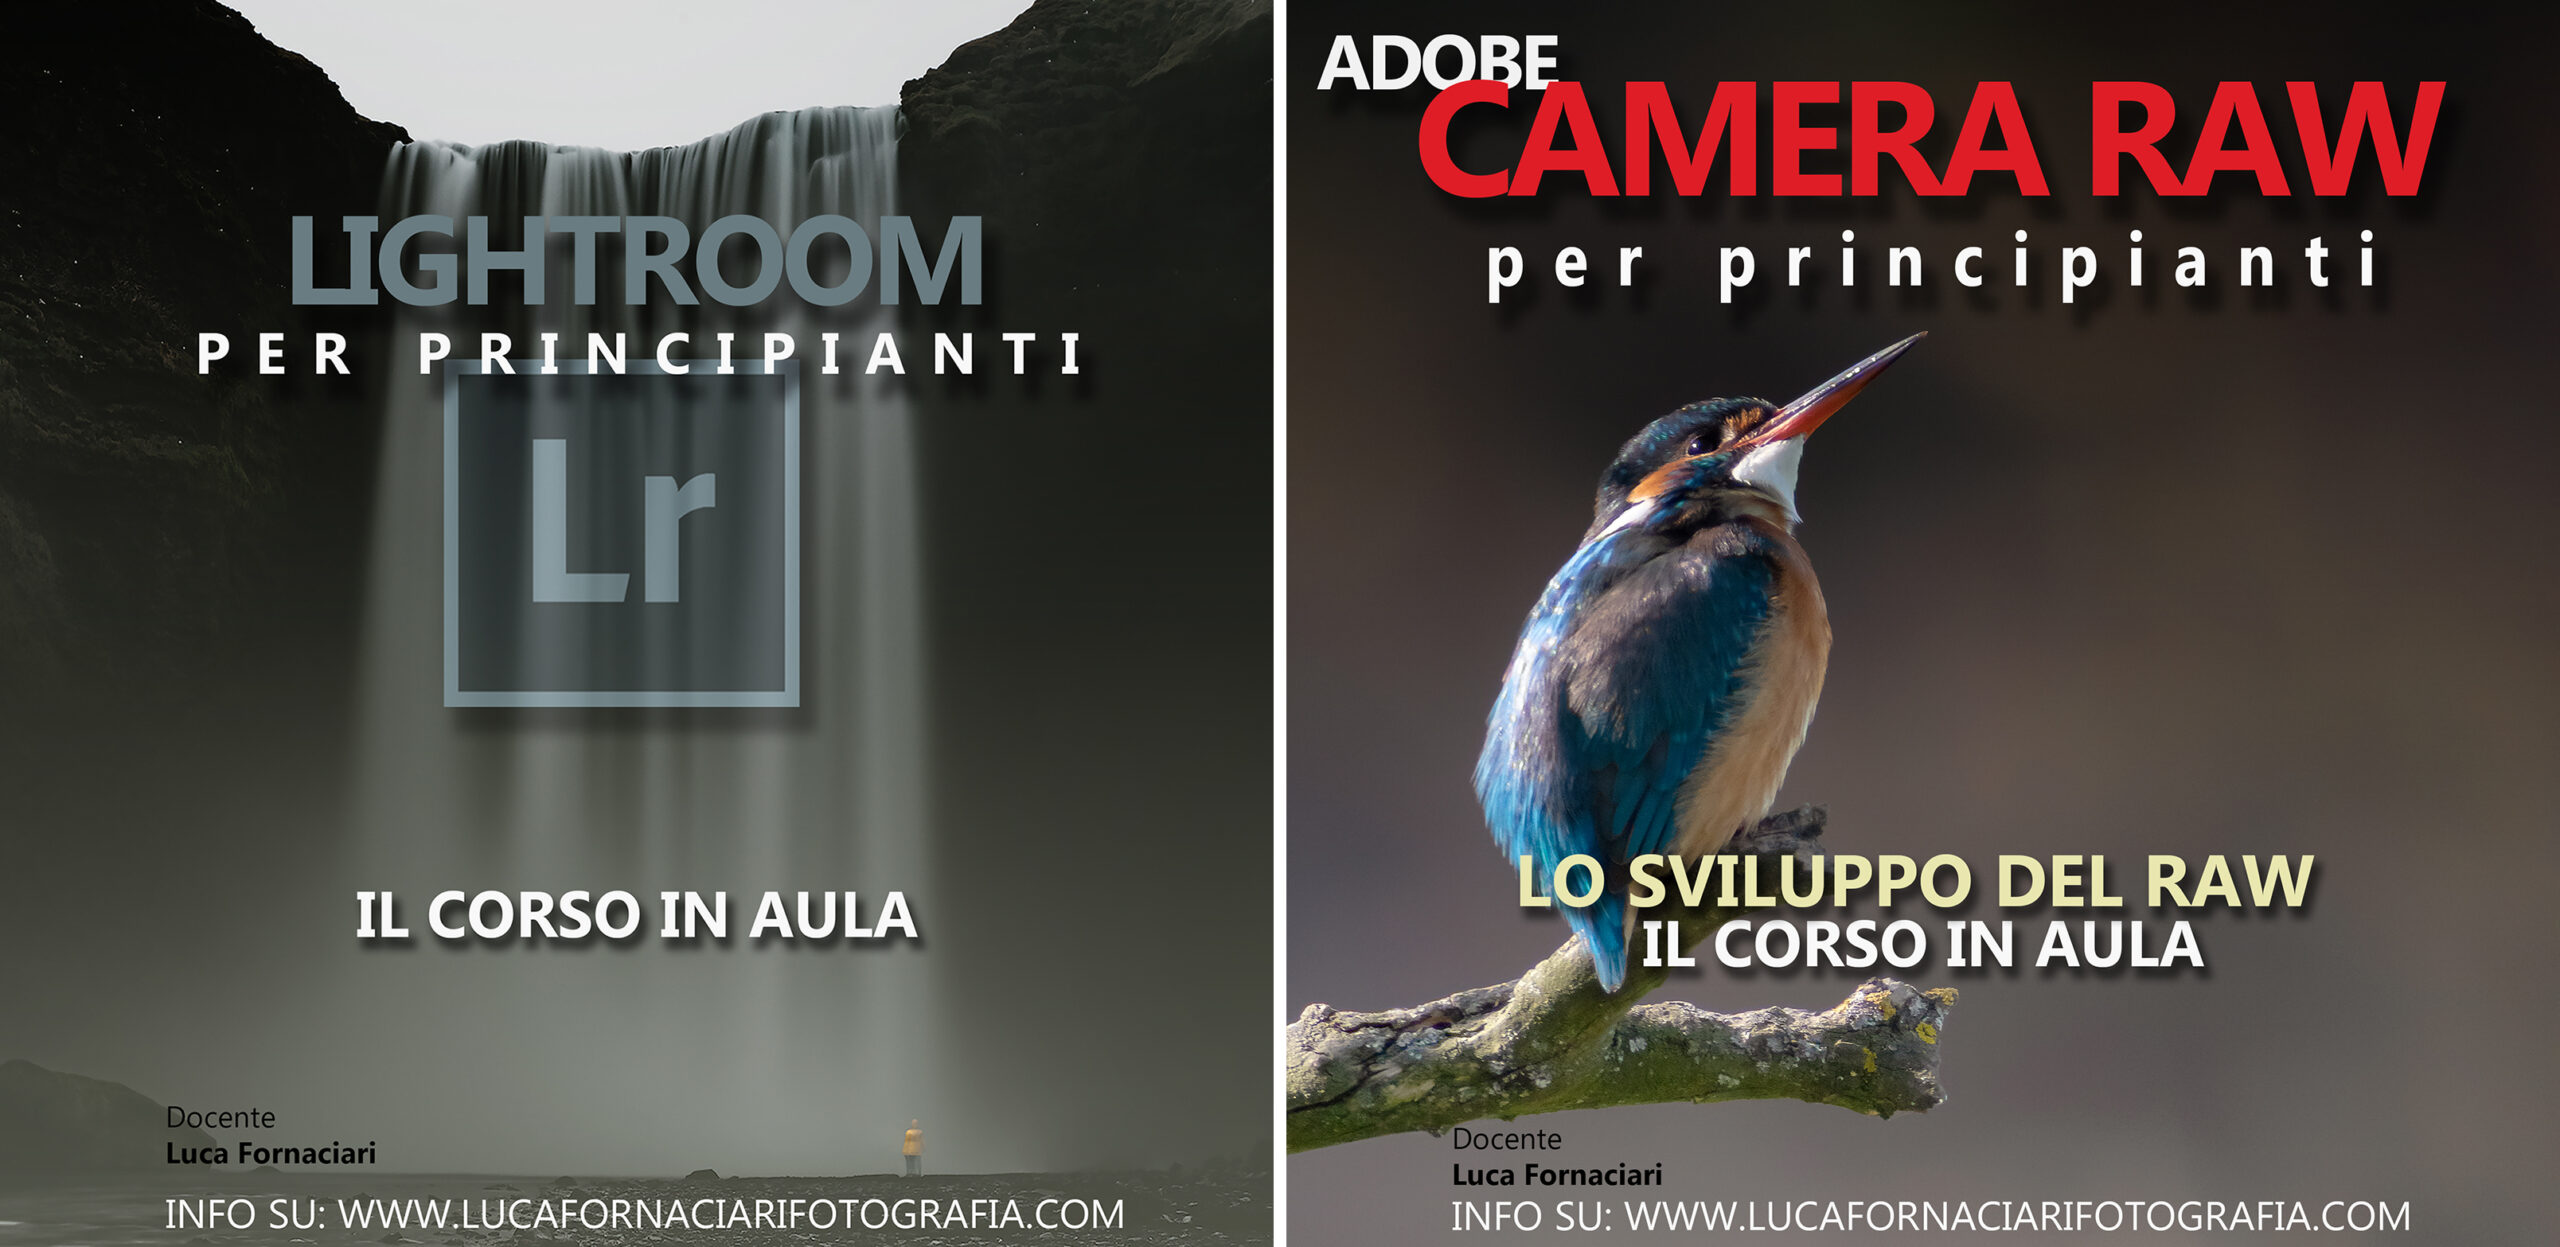 Adobe Lightroom e Camera Raw: lo sviluppo del negativo digitale